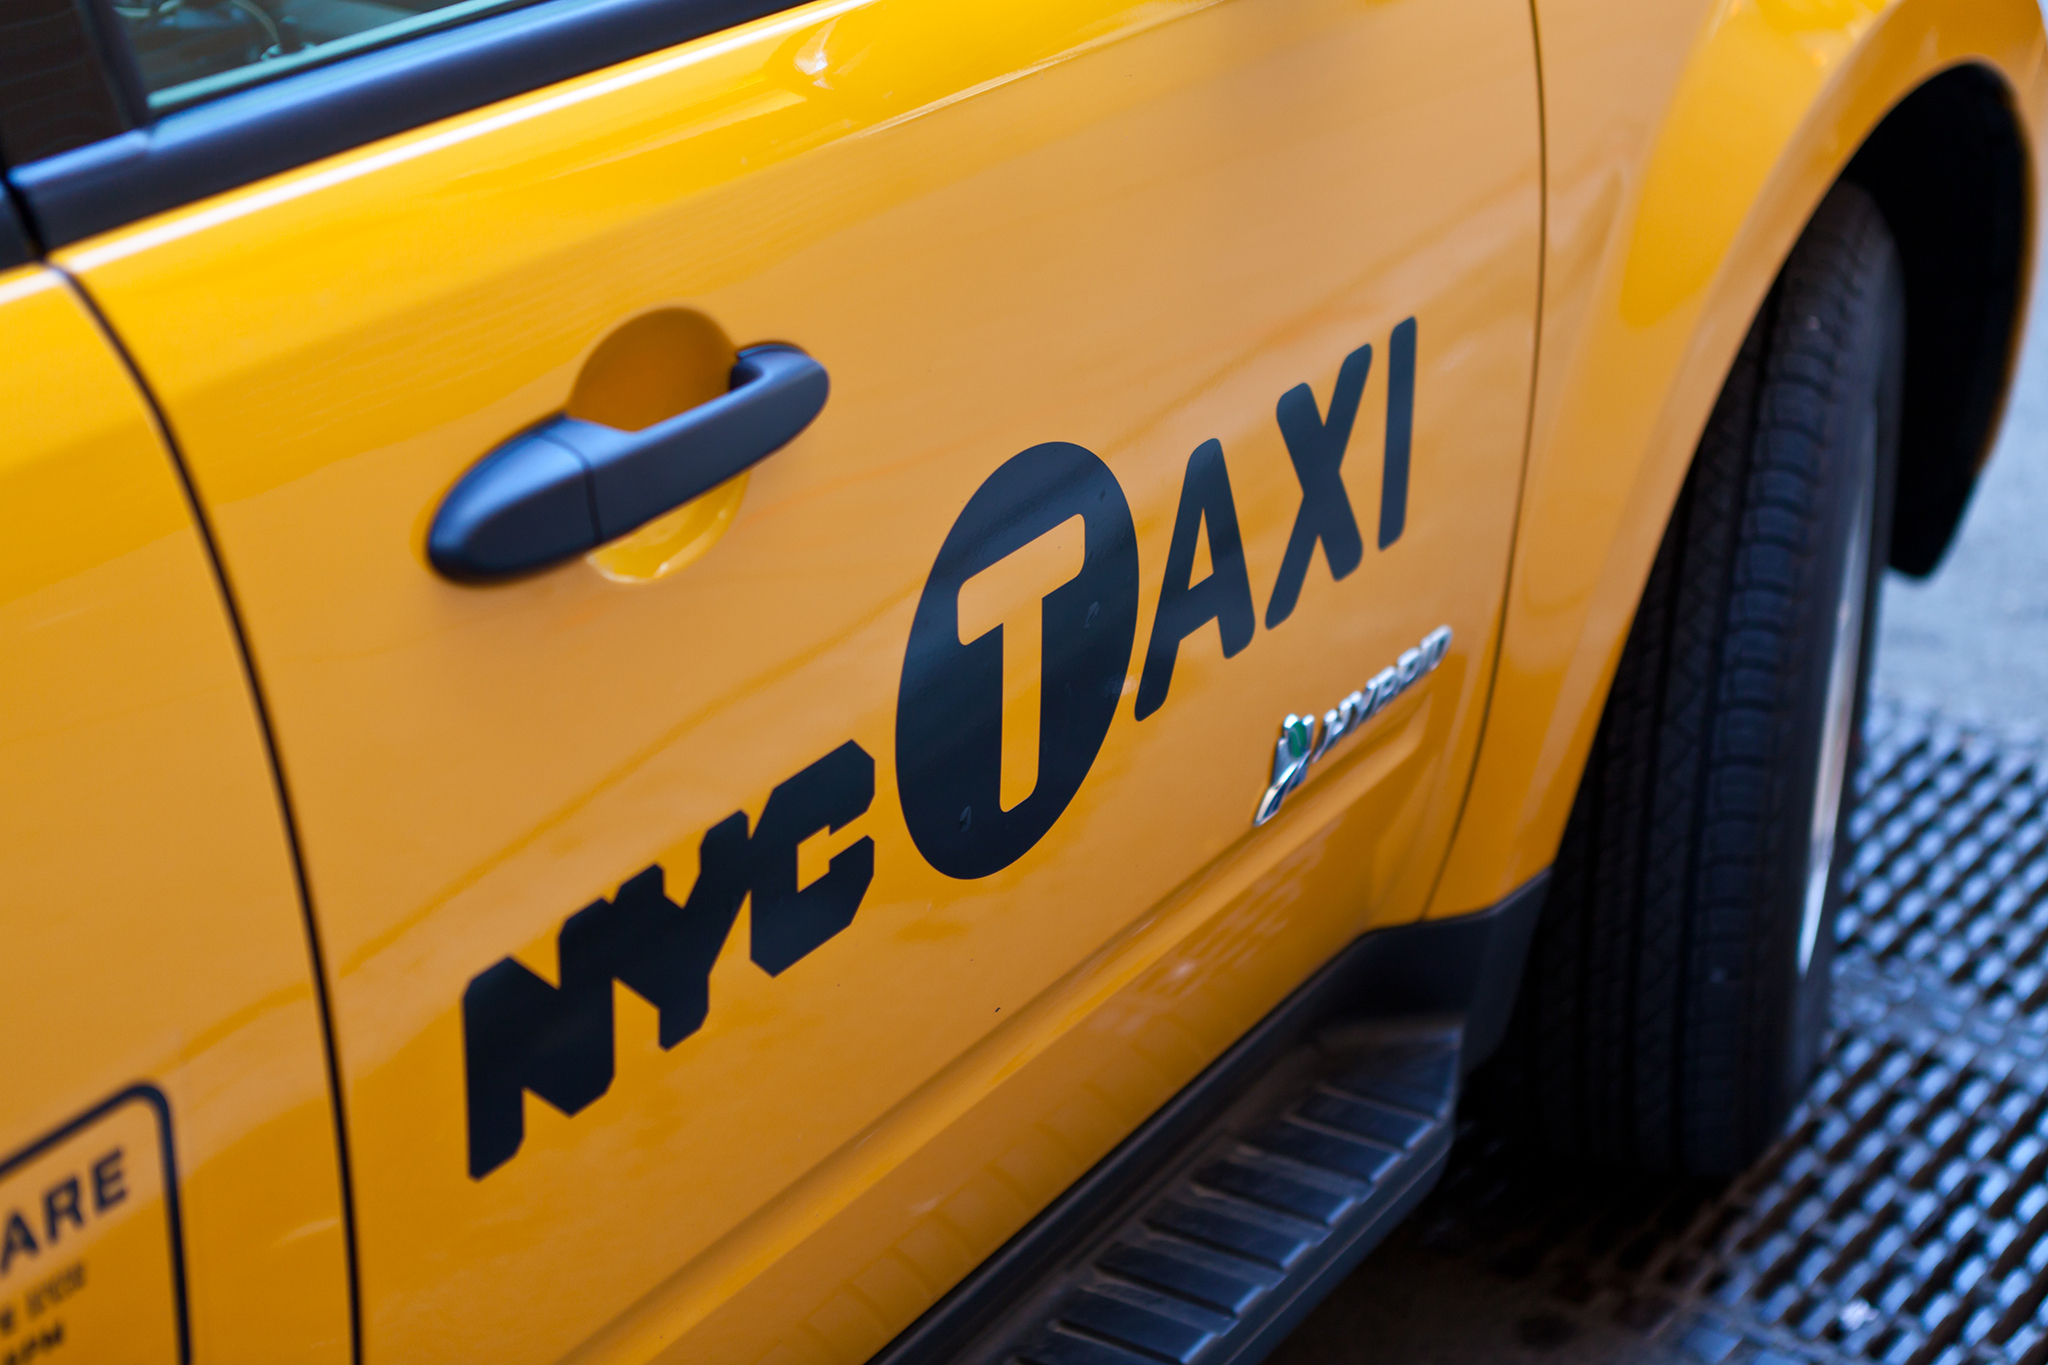 Soon you'll be able to share rides in yellow taxis